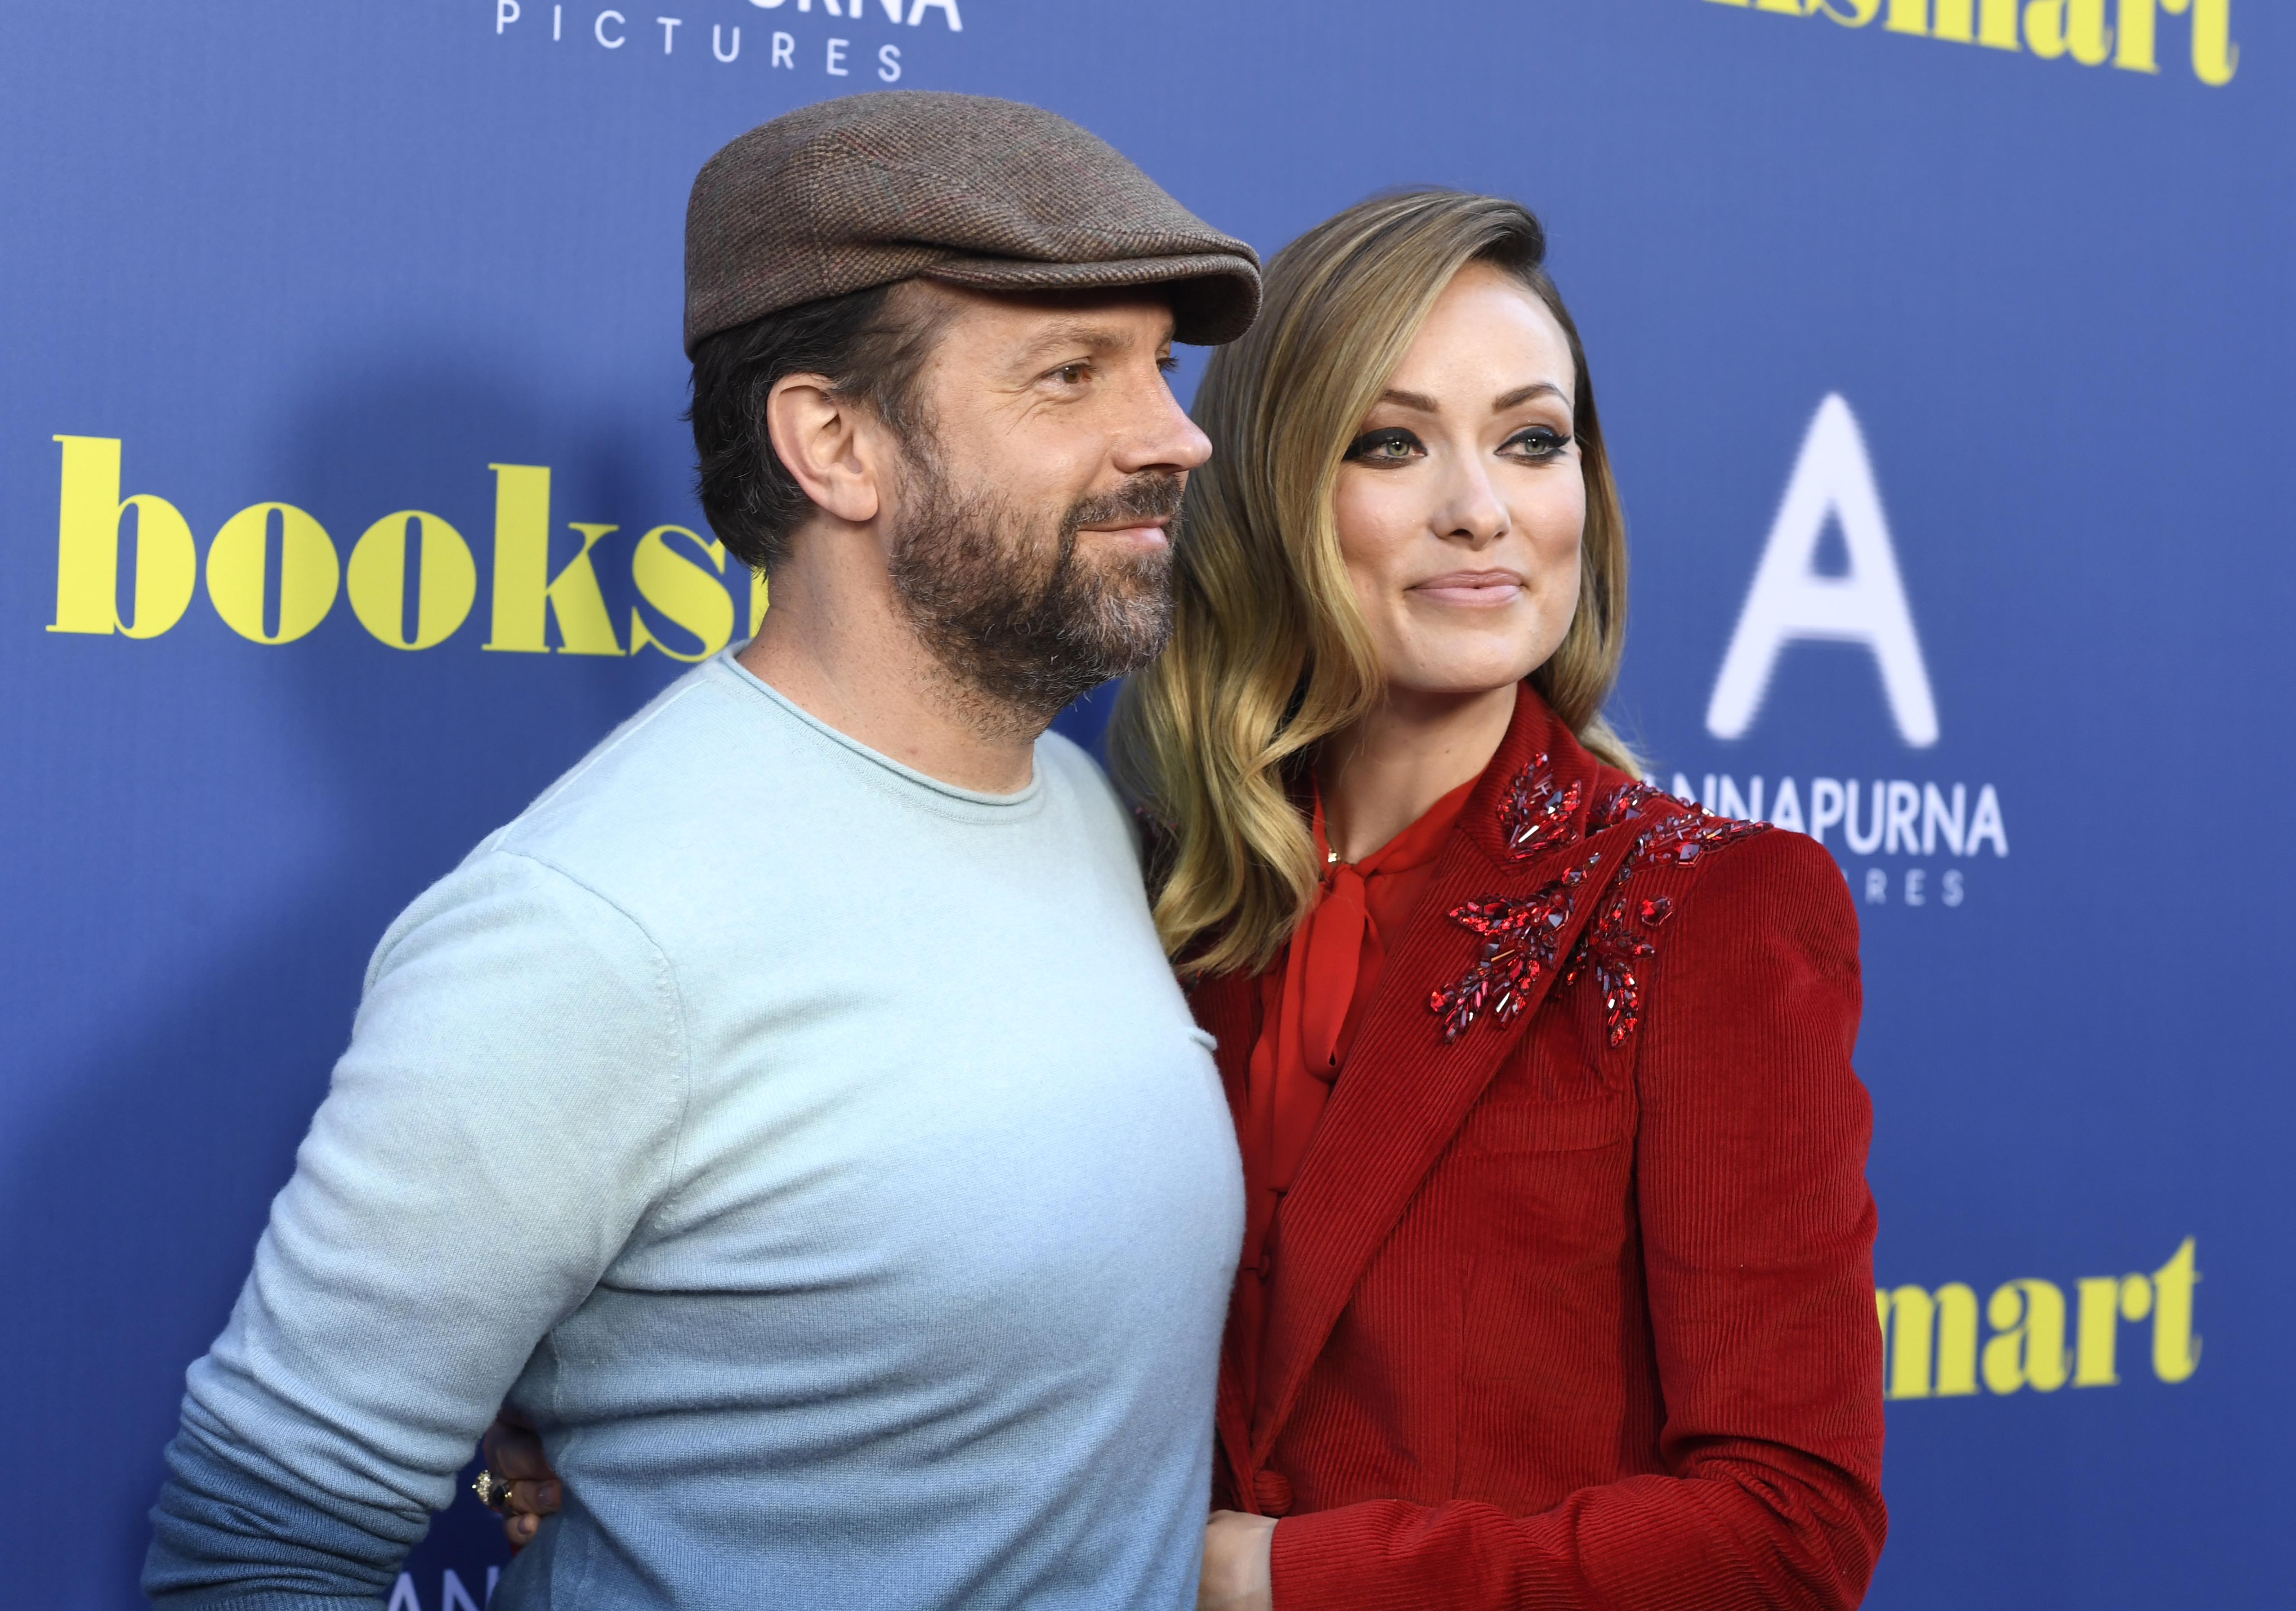 """Jason Sudeikis and Olivia Wilde at the screening of """"Booksmart"""", which Wilde directed in Los Angeles, May 2019. """" Photo: Getty Images."""